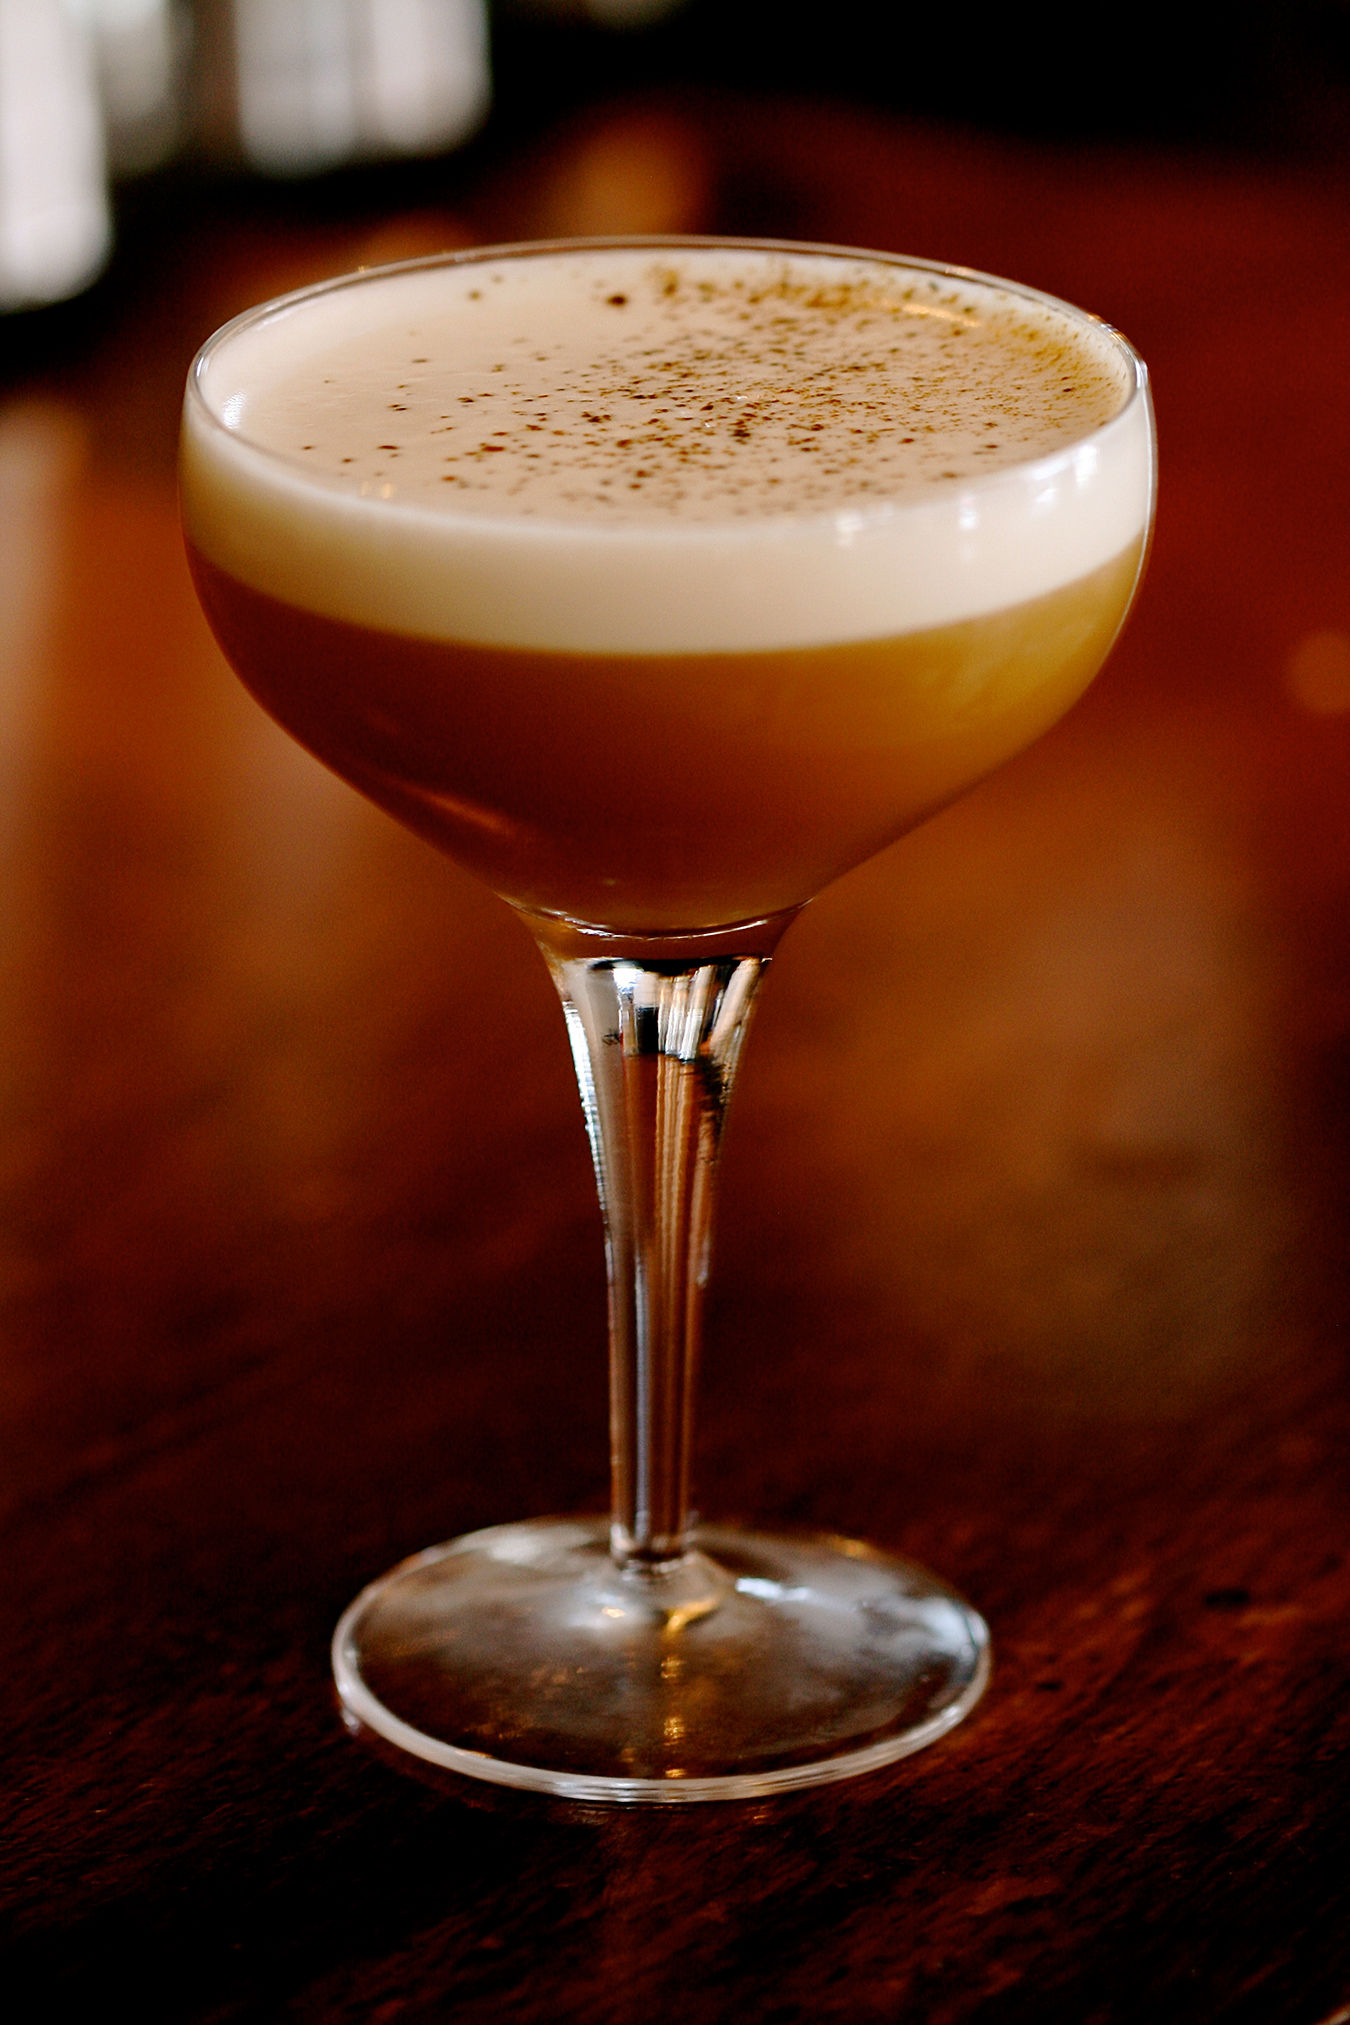 NUVO Daily Edit: Tony Conigliario Recipe, Licorice Whisky Sour